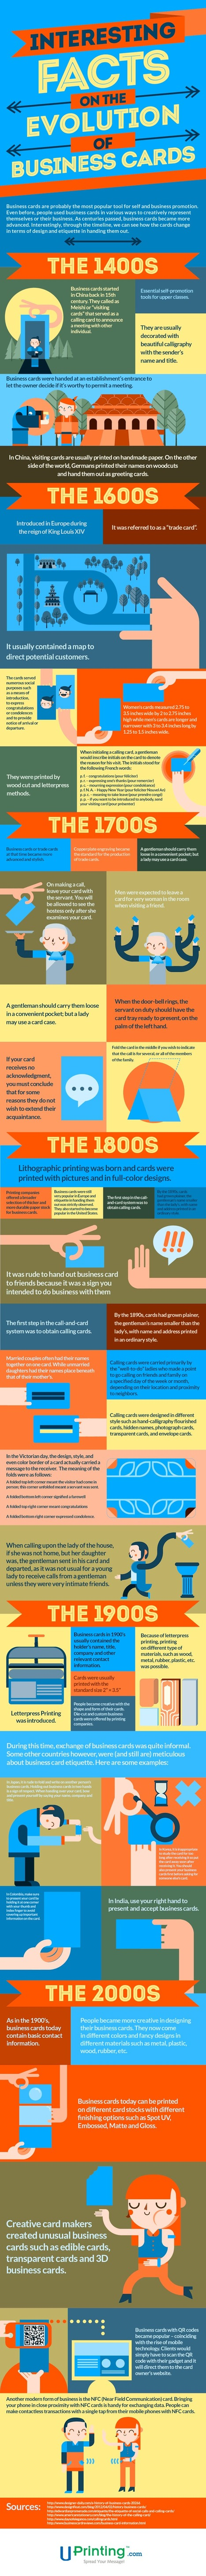 Interesting Facts on the Evolution of Business Cards #infographic | MarketingHits | Scoop.it